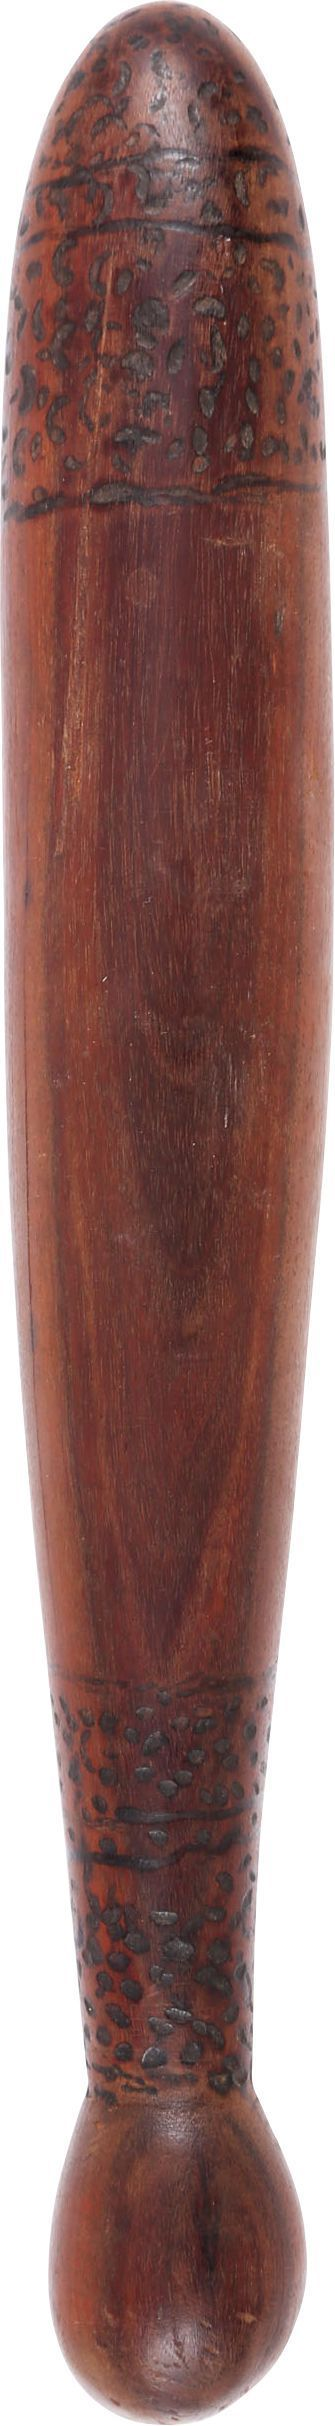 Australian Aborigine Hand Club - Product